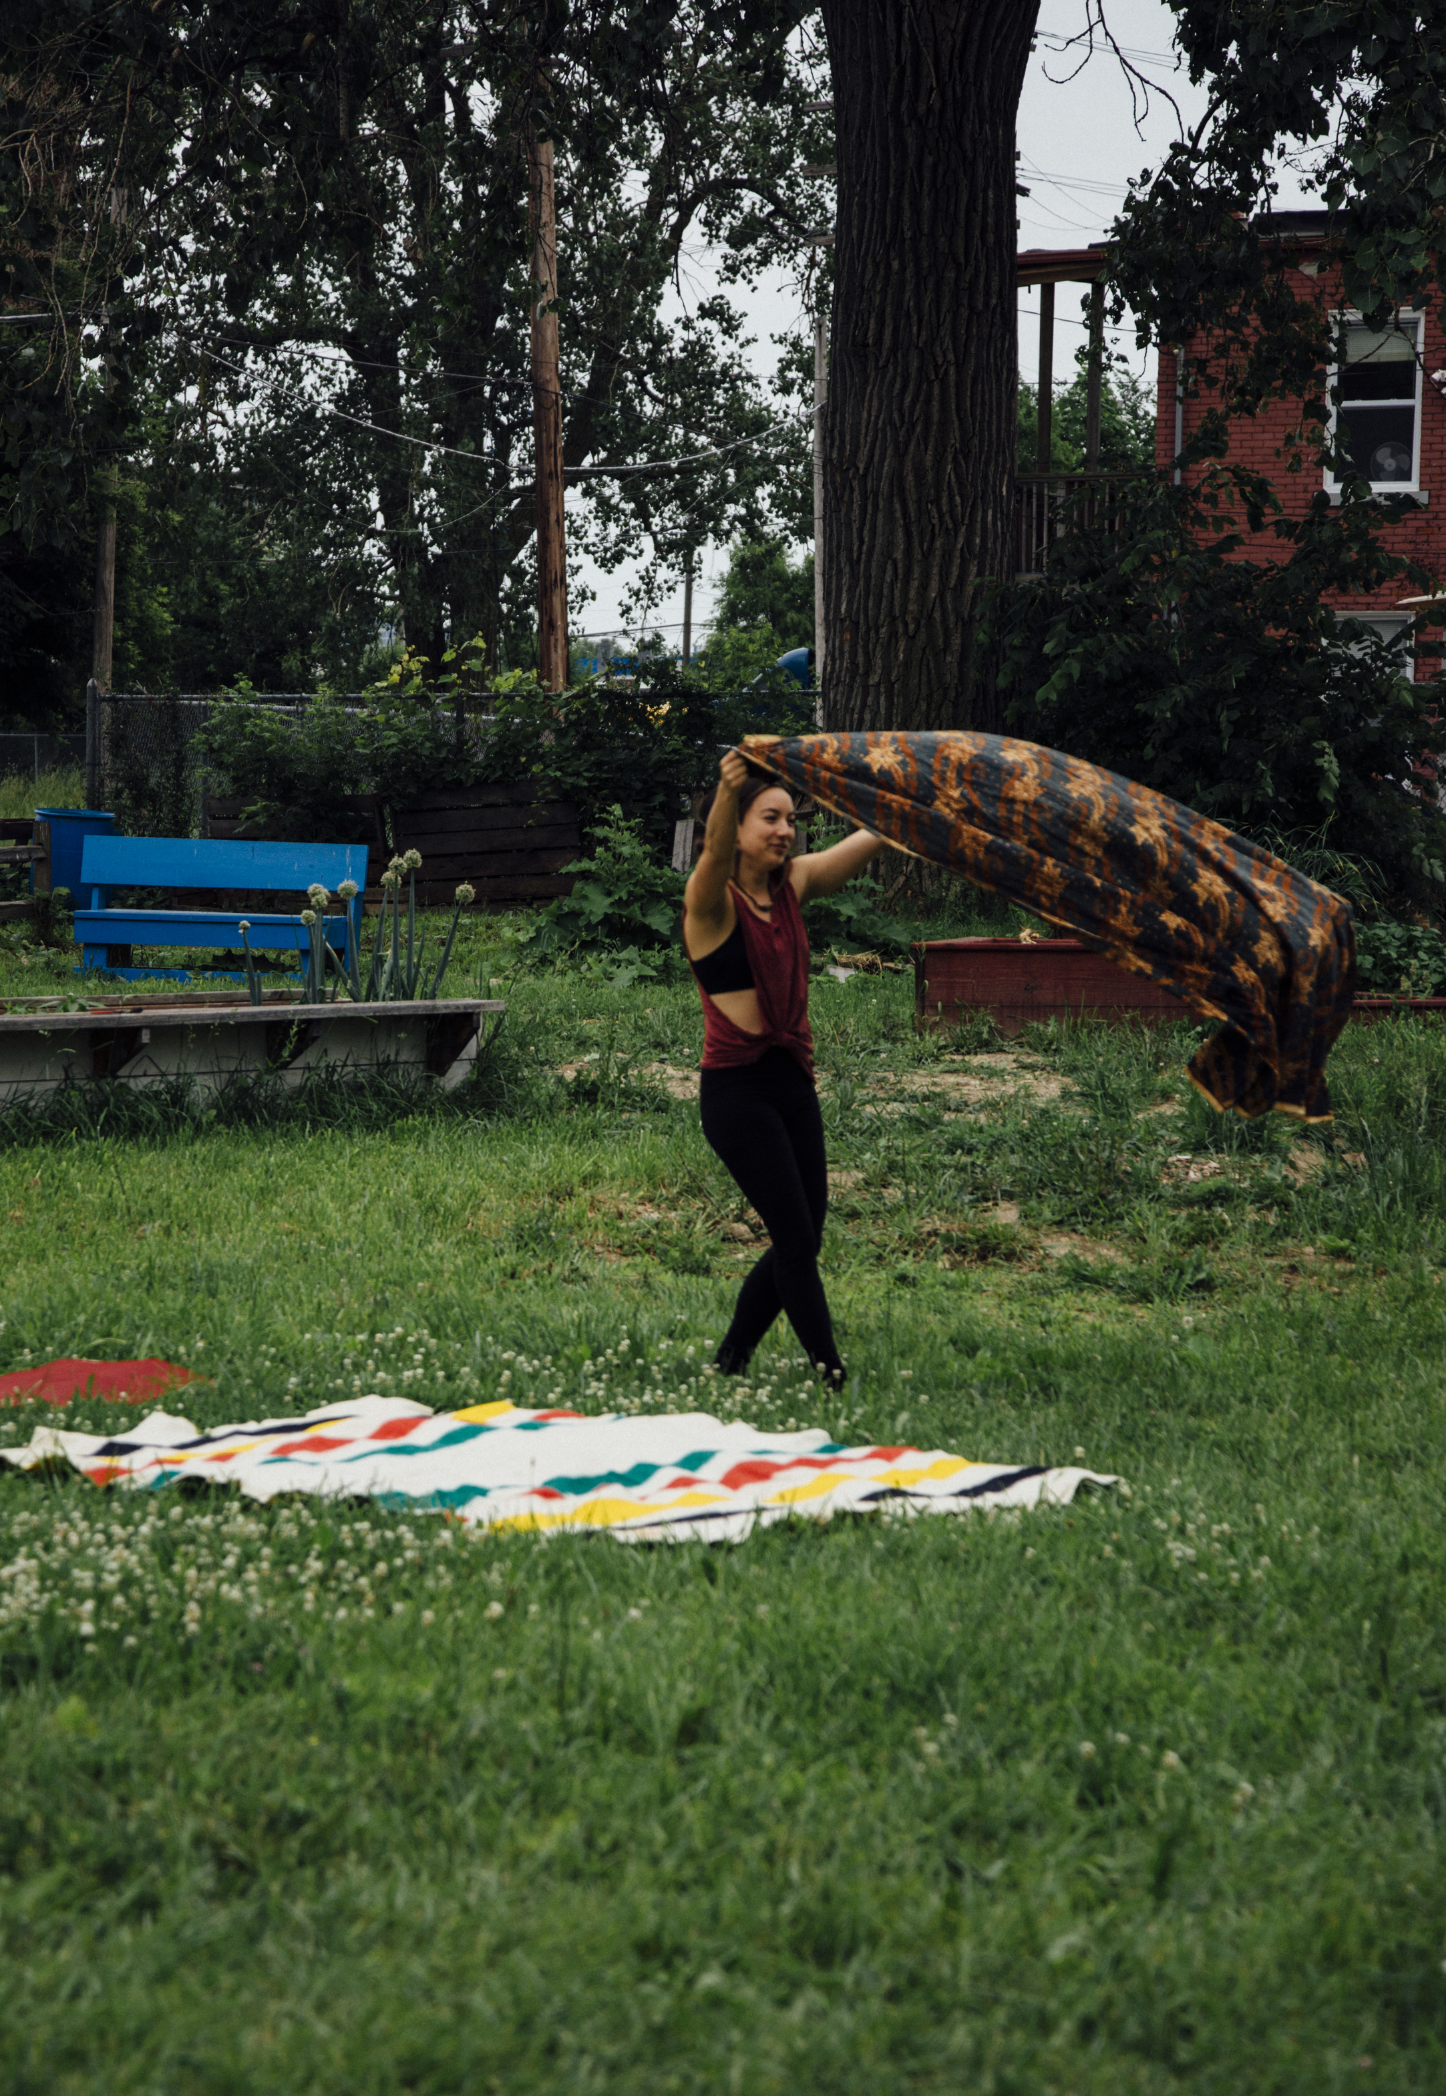 Monica LaFlamme, setting up blankets for the acro-yoga group.                            photo: ee berger